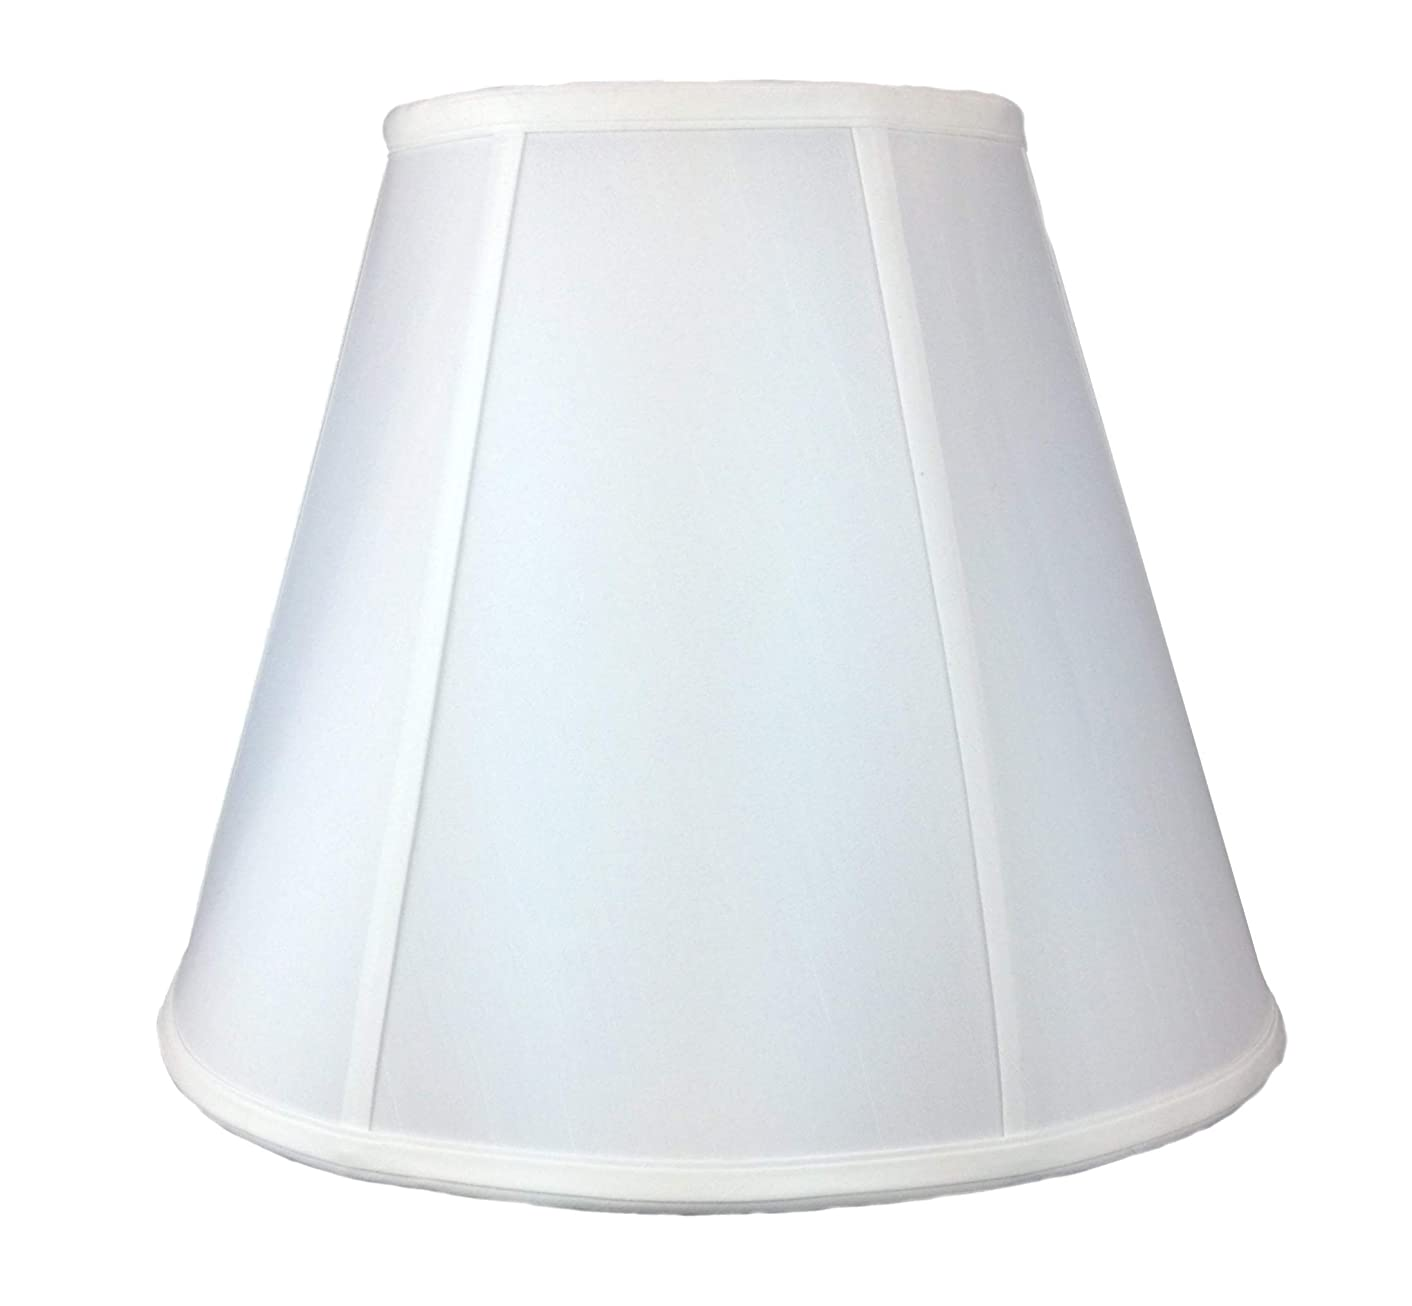 8x16x12 Hardback Box Pleat Lampshade White Shantung with Brass Spider fitter By Home Concept - Perfect for table lamps and some desk lamps -Medium, White